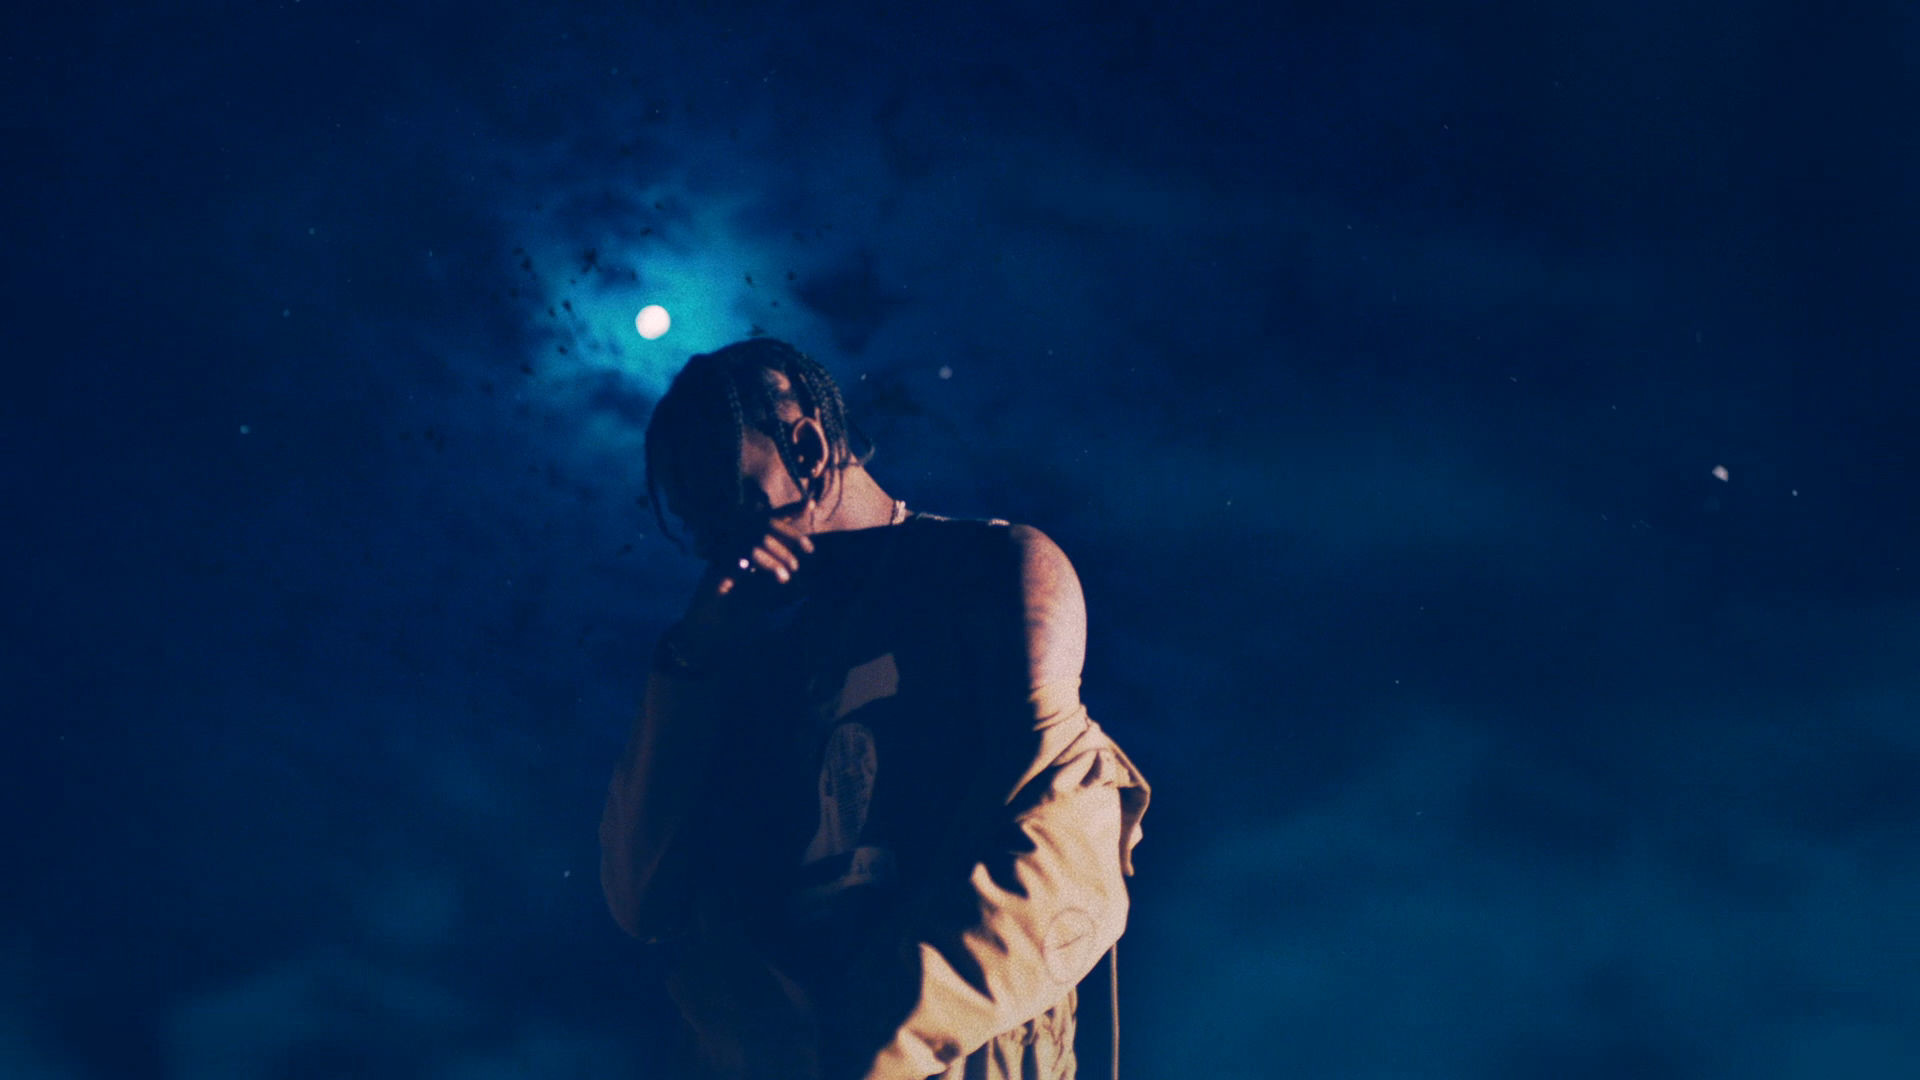 Travis Scott 4k Wallpaper posted by Ryan Walker 1920x1080